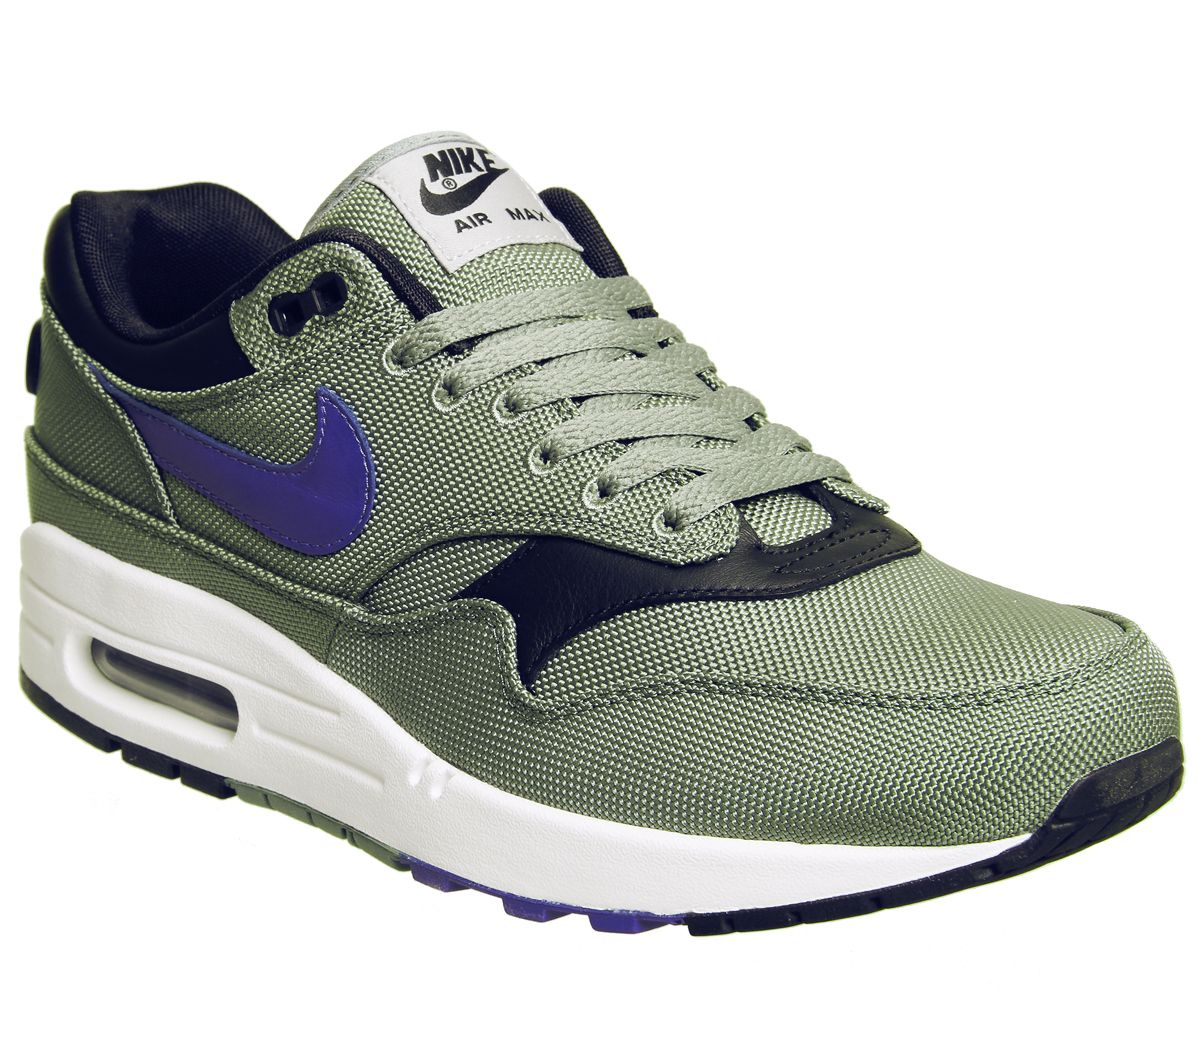 newest 9fbbf 64fd3 Nike Air Max 1 Trainers Clay Green Hyper Floral - His trainers